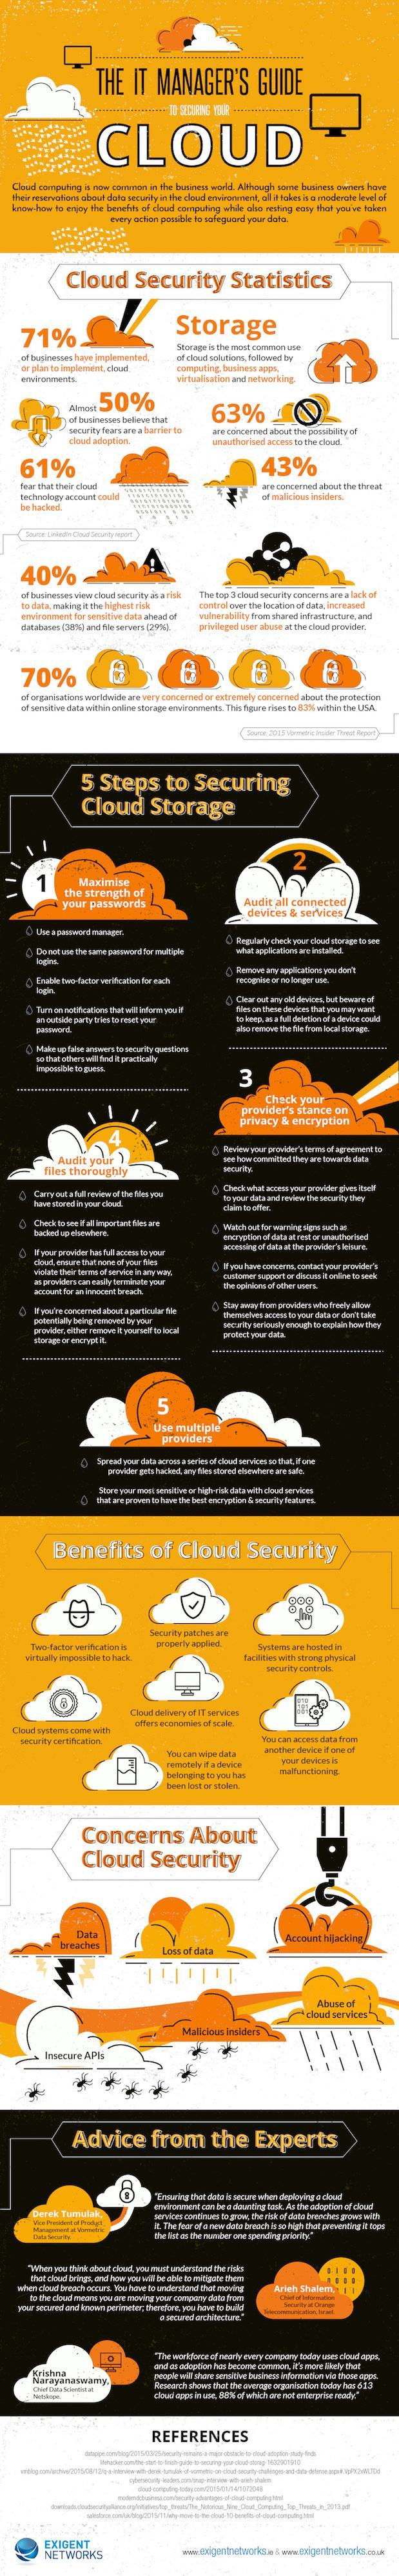 the-IT-managers-guide-to-securing-your-cloud-infographic